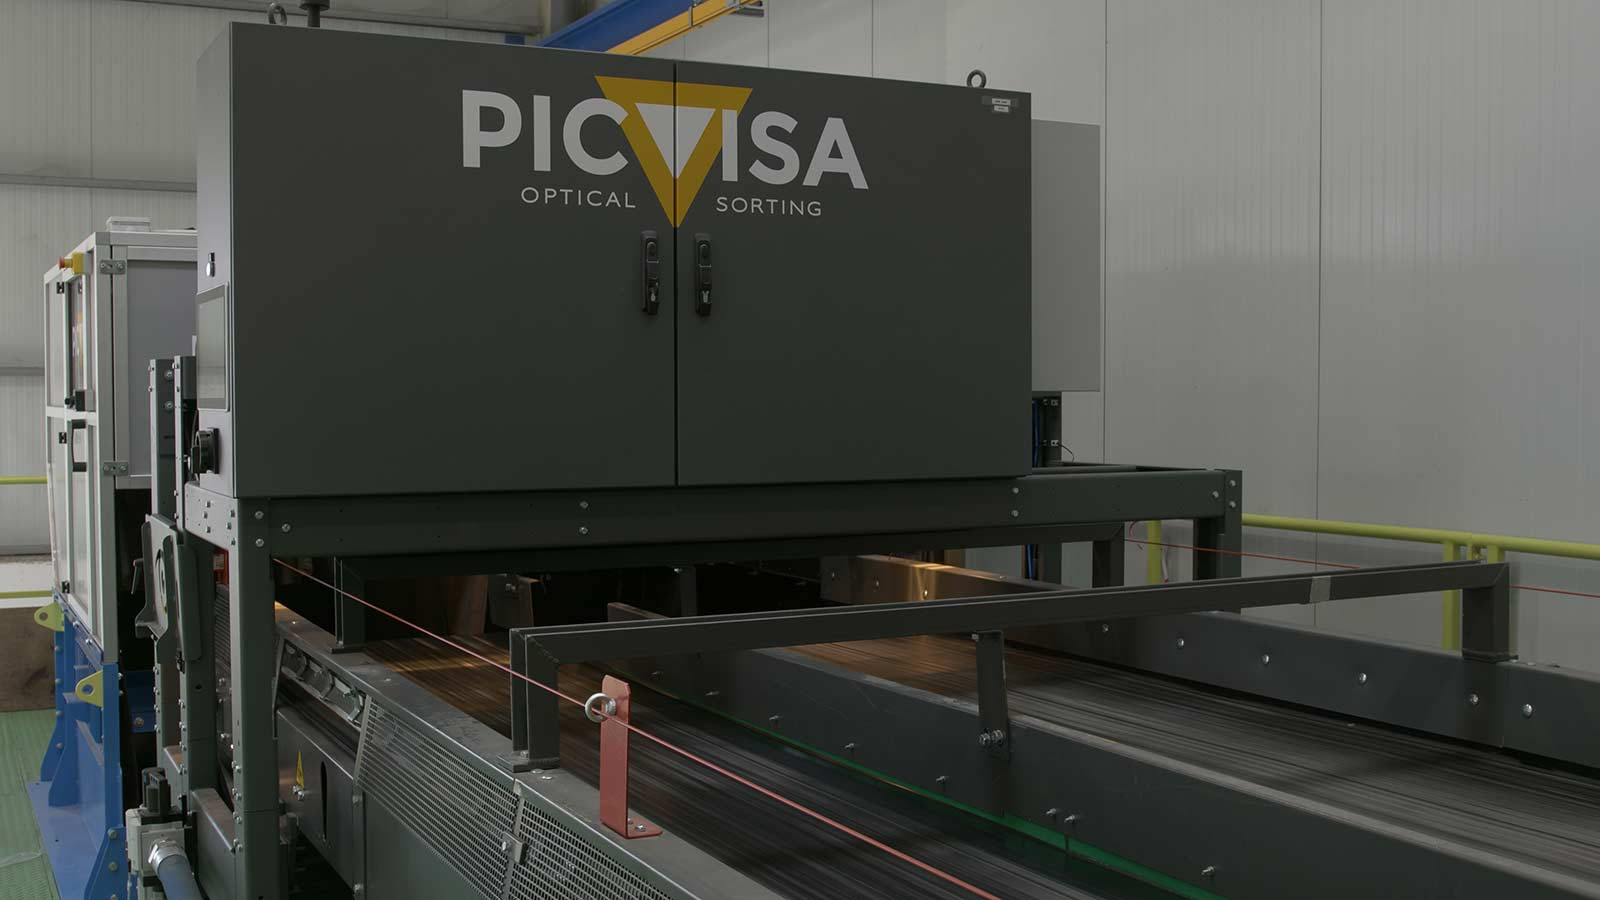 Picvisa and Specim FX series hyperspectral cameras